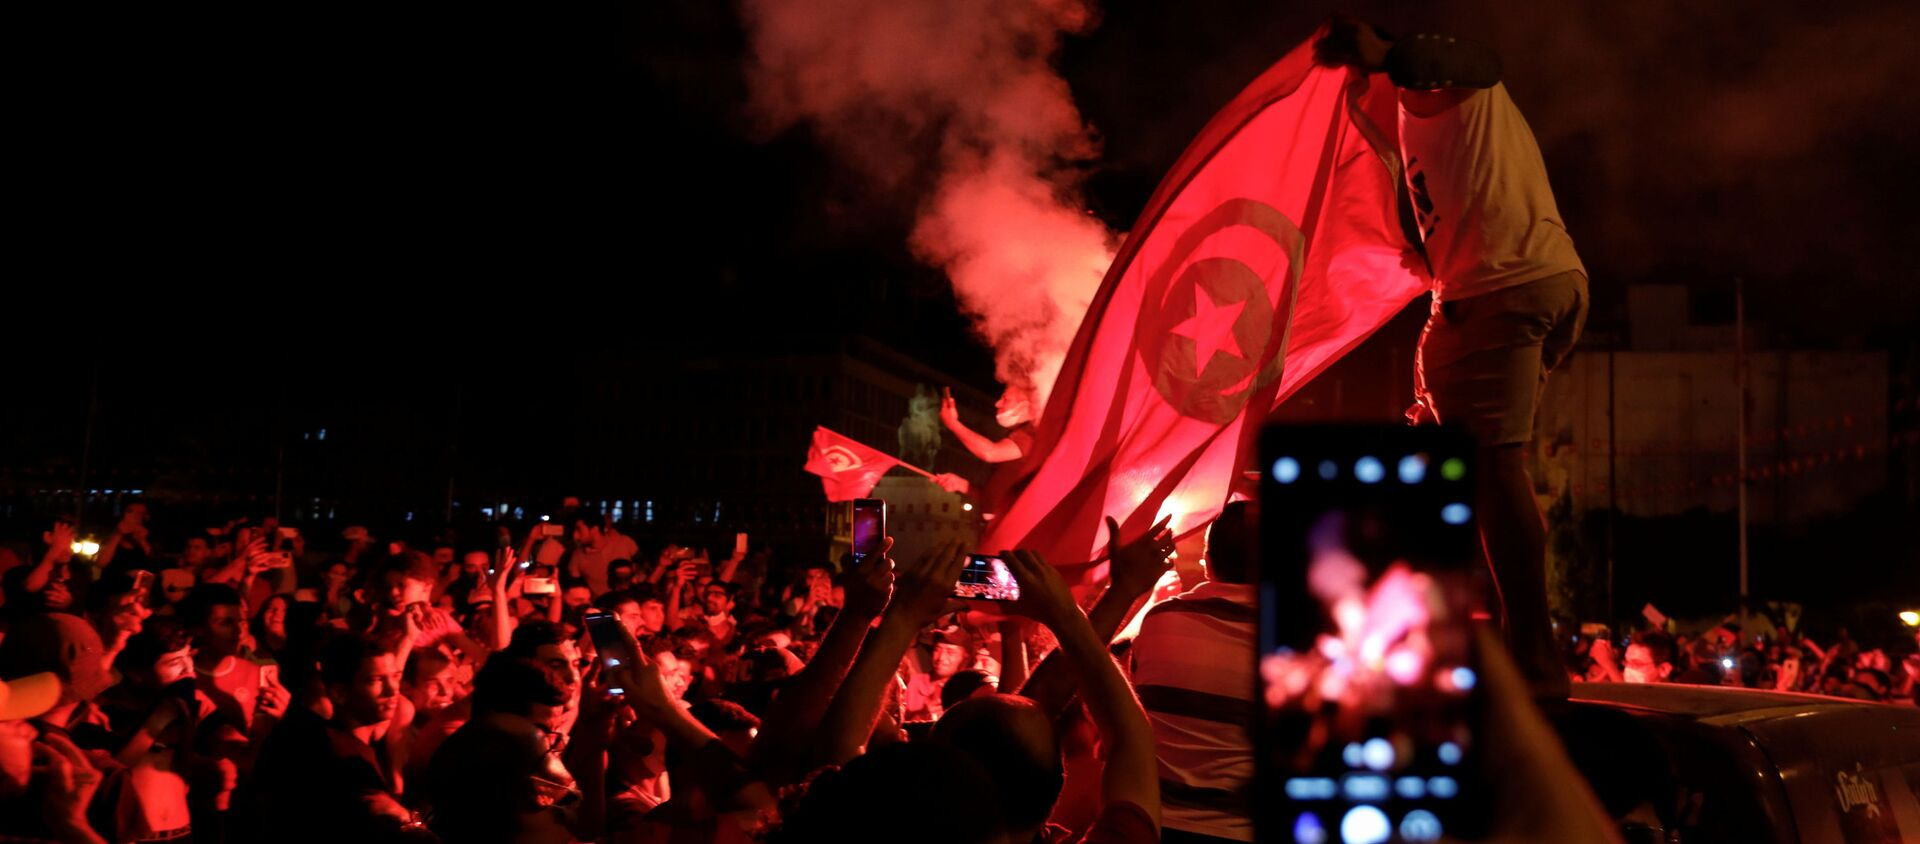 Supporters of Tunisia's President Kais Saied gather on the streets as they celebrate after he dismissed the government and froze parliament, in Tunis, Tunisia July 25, 2021. - Sputnik International, 1920, 25.07.2021